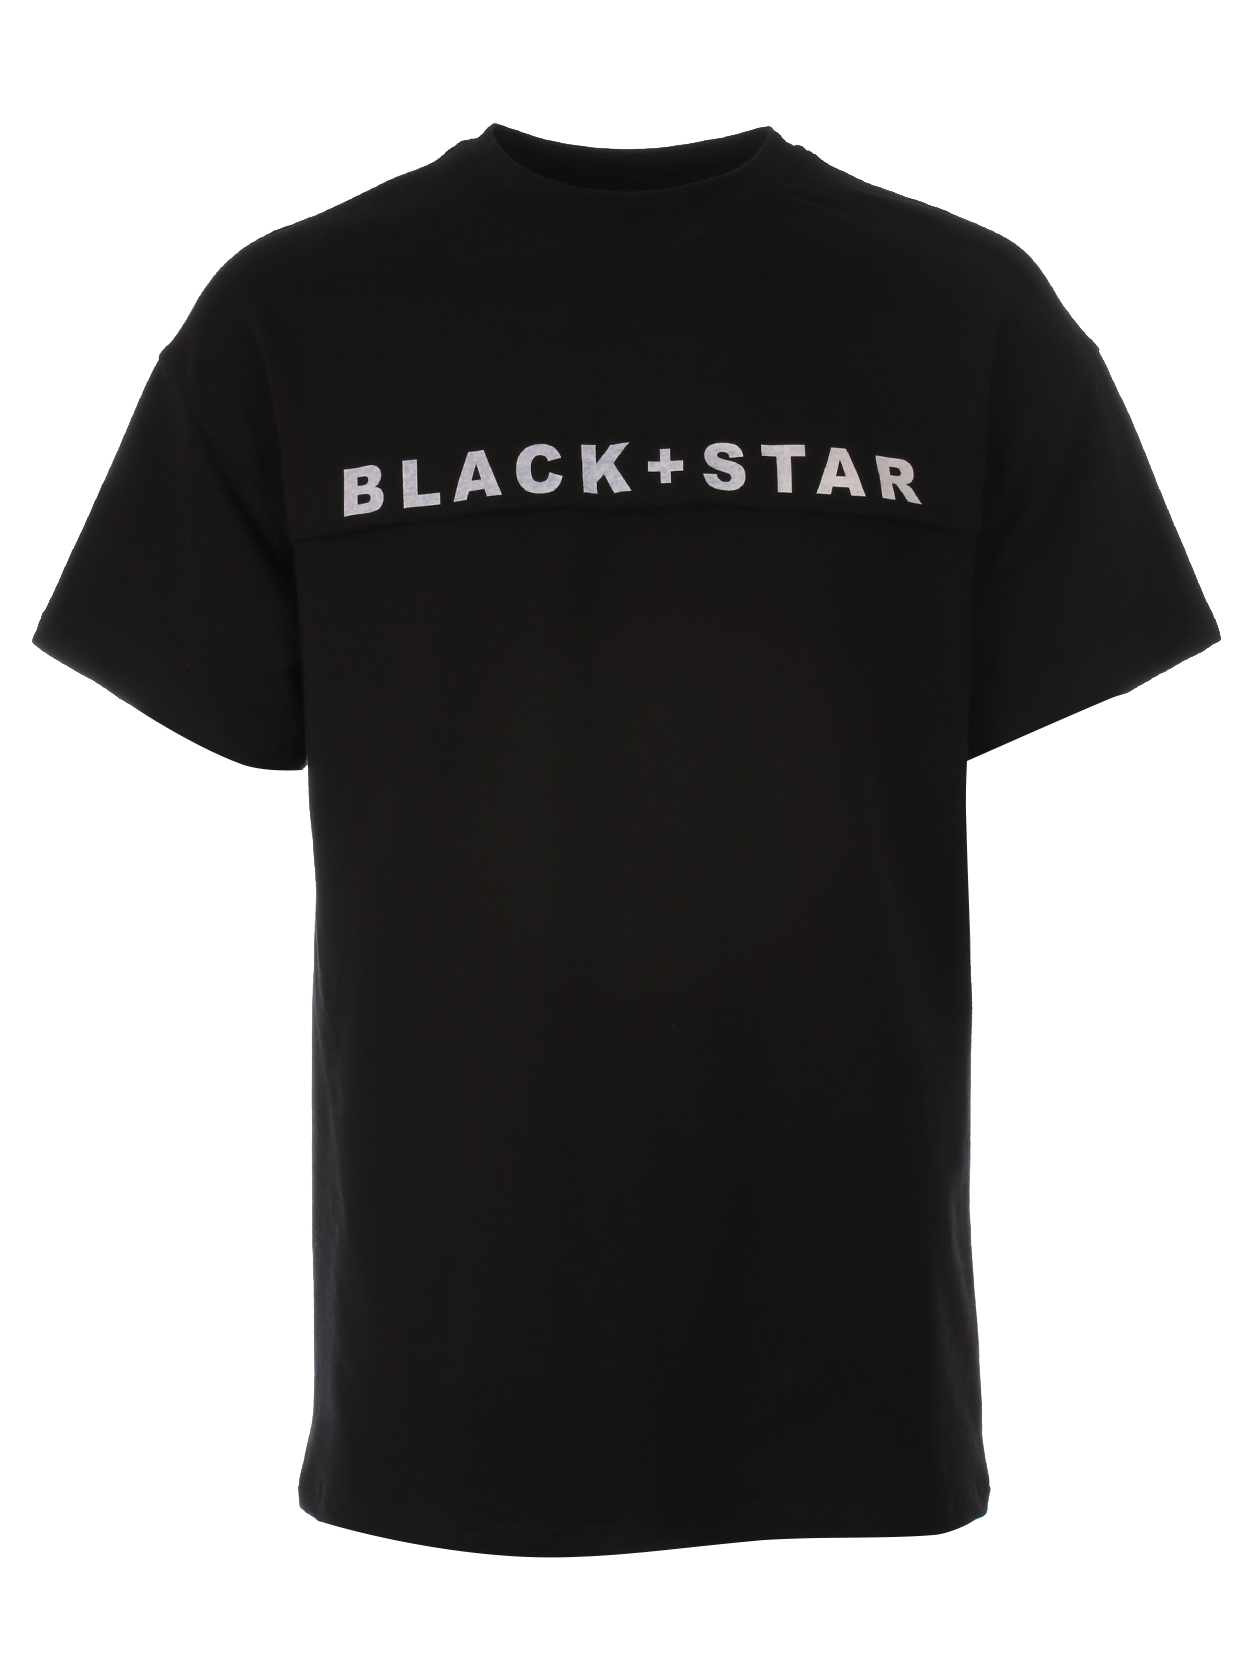 Black Star WearMens basic t-shirt by Black Star Wear. Loose fit, round neck. High quality cotton tissue to give you maximum comfort, this t-shirt will become one of you favorite basic garments. Decorative element with Black Star print on the chest. Availiable in black and beige.<br><br>size: S<br>color: Black<br>gender: male